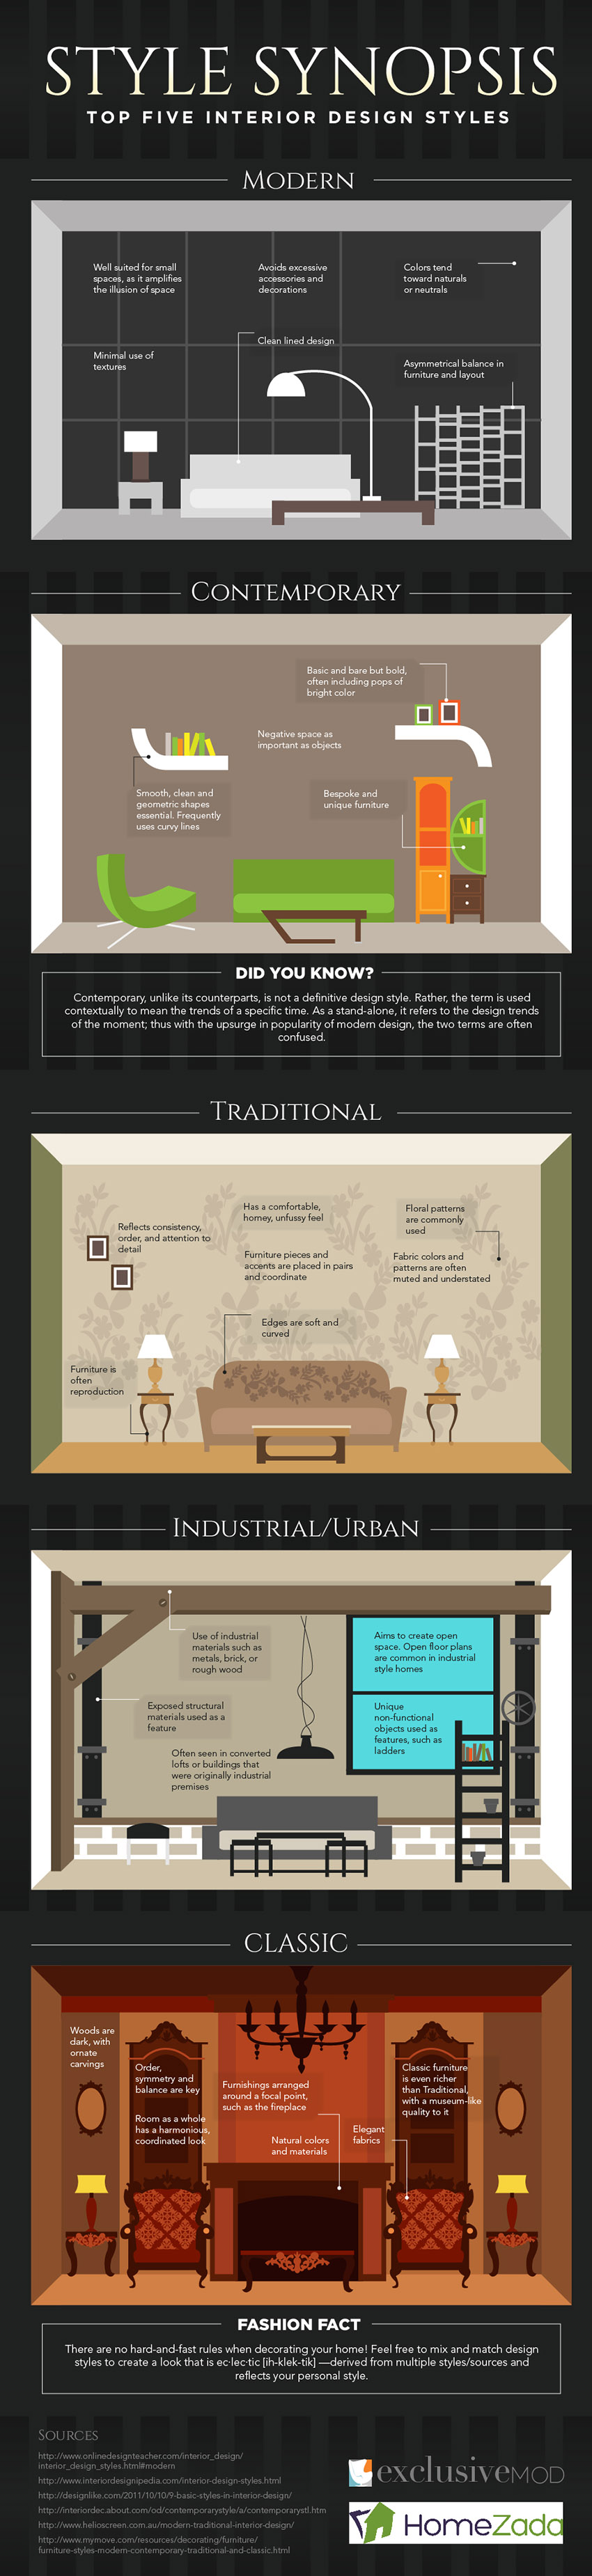 interior design infographic